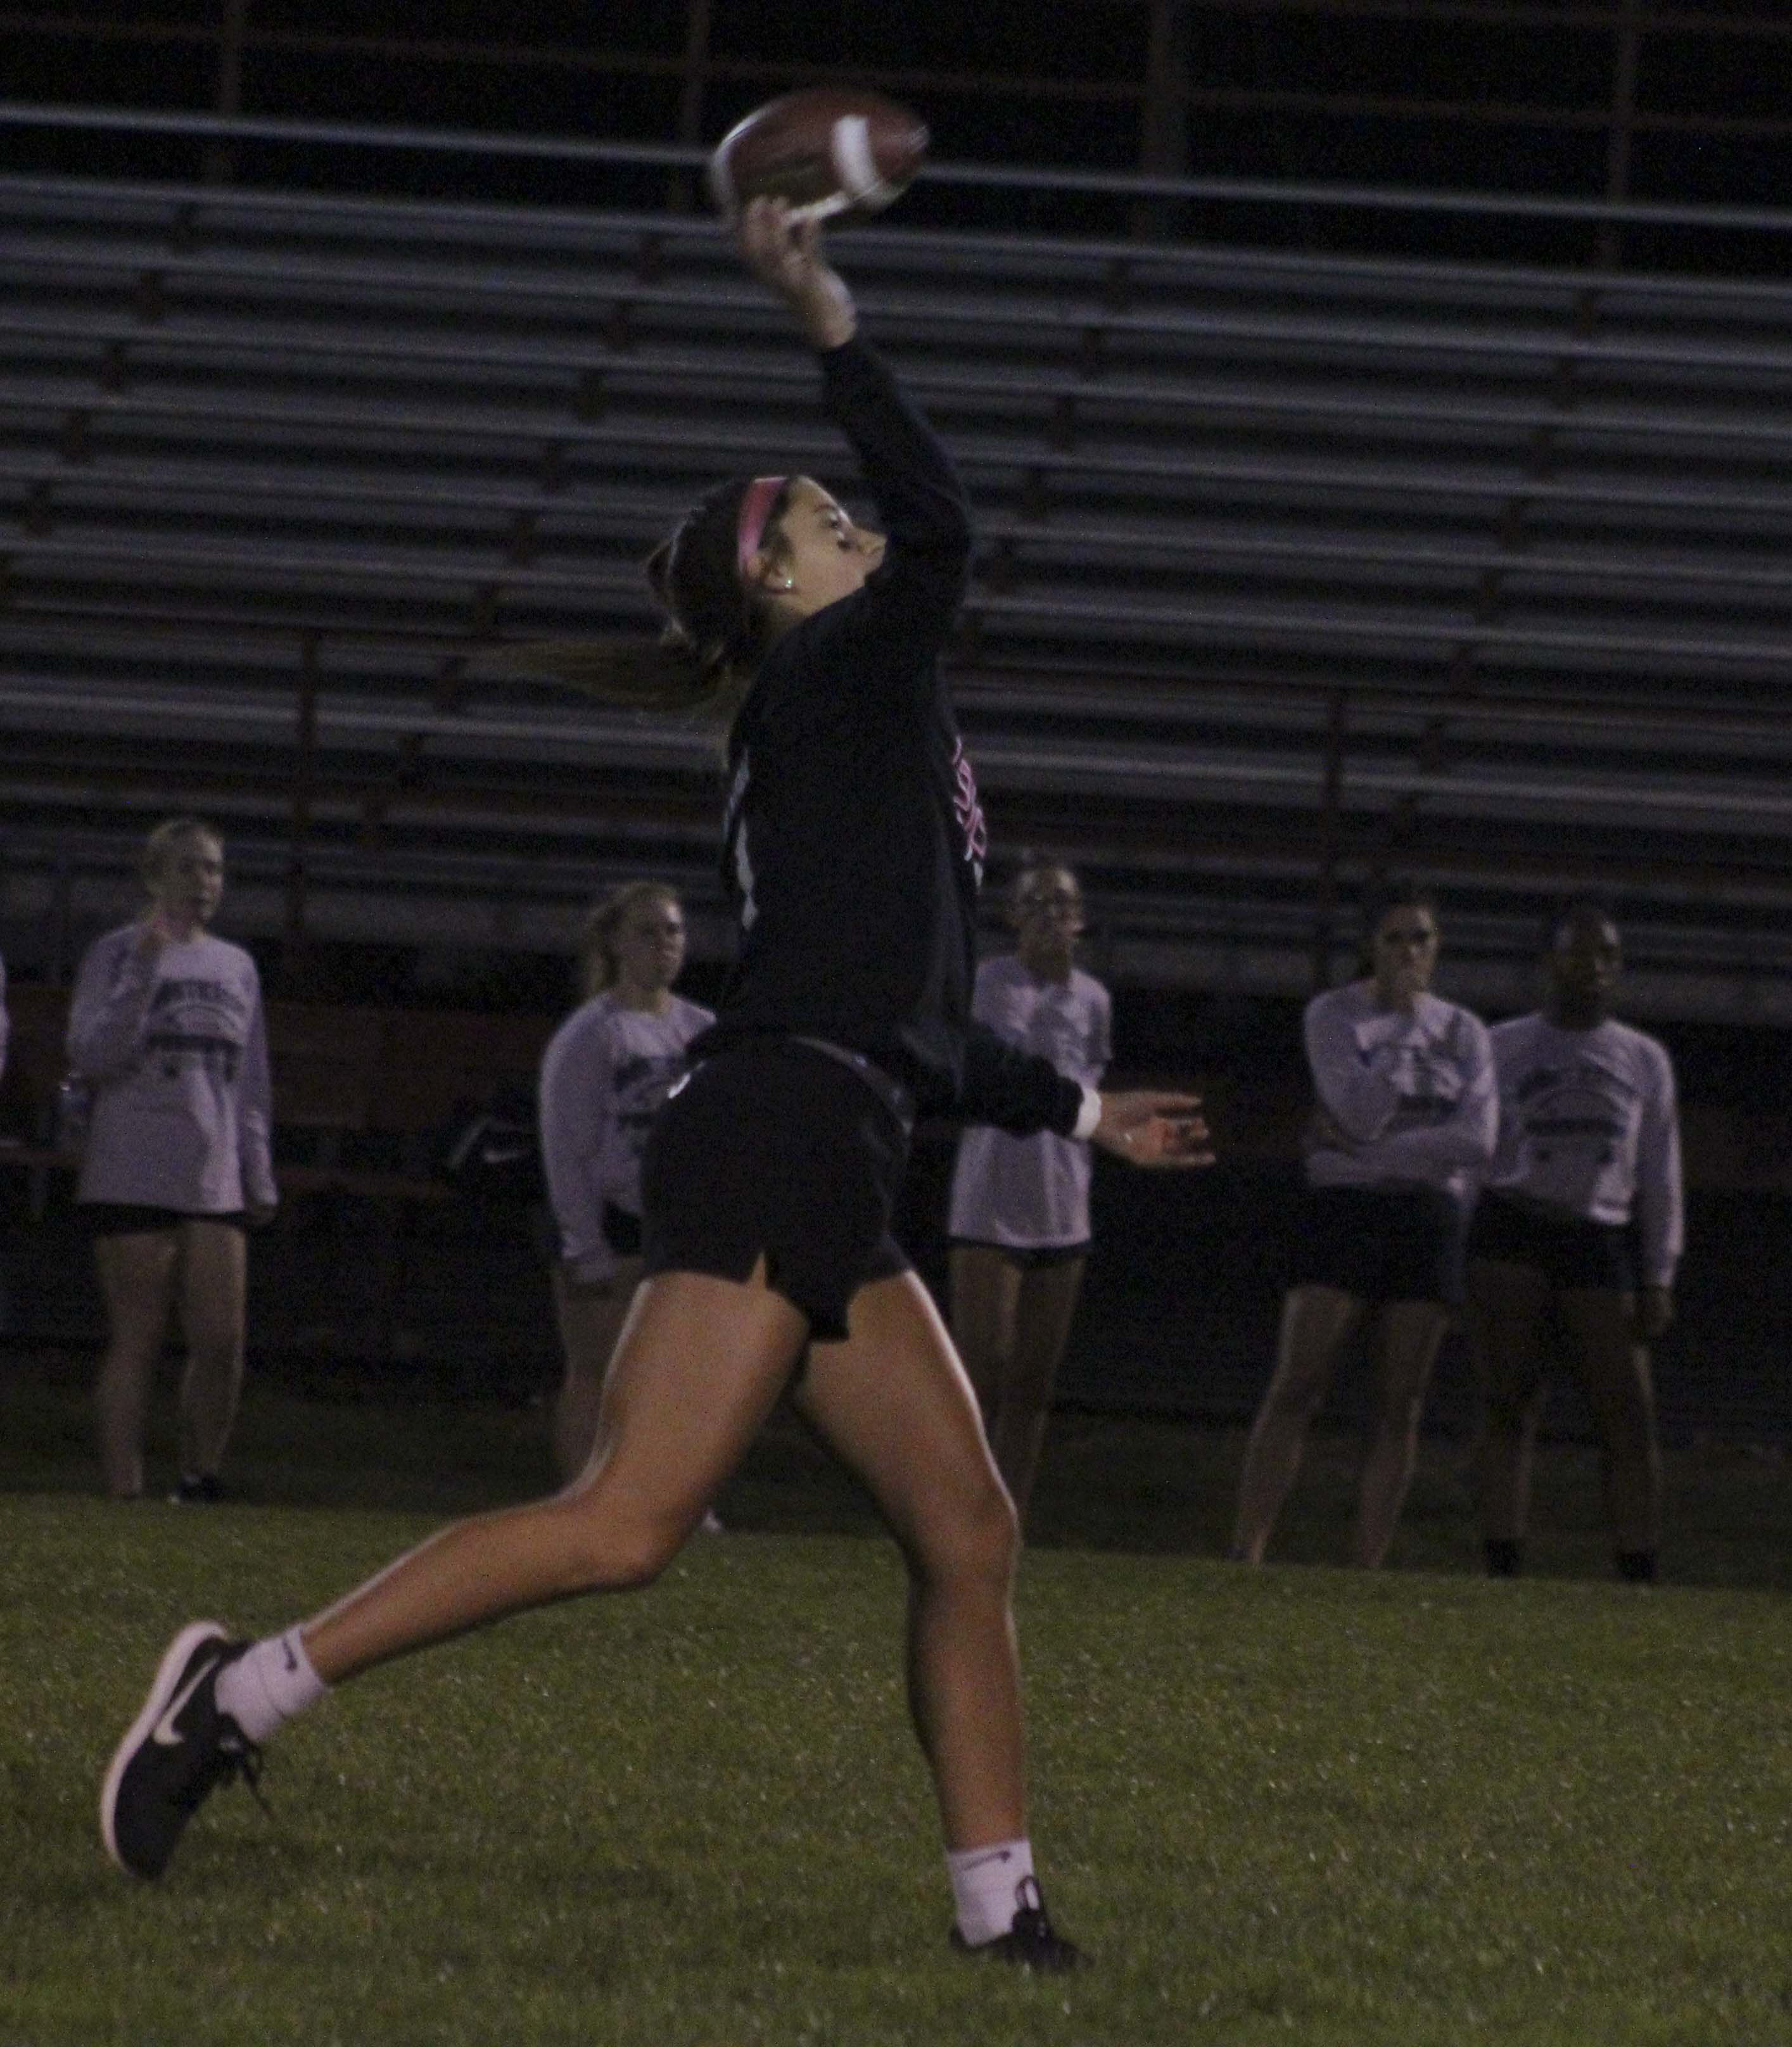 Karli Recker throws a pass for the Seniors during the annual Homecoming Powderpuff football game Sept. 21 at Dean Nelson Field. The Seniors defeated the Juniors 24-6.